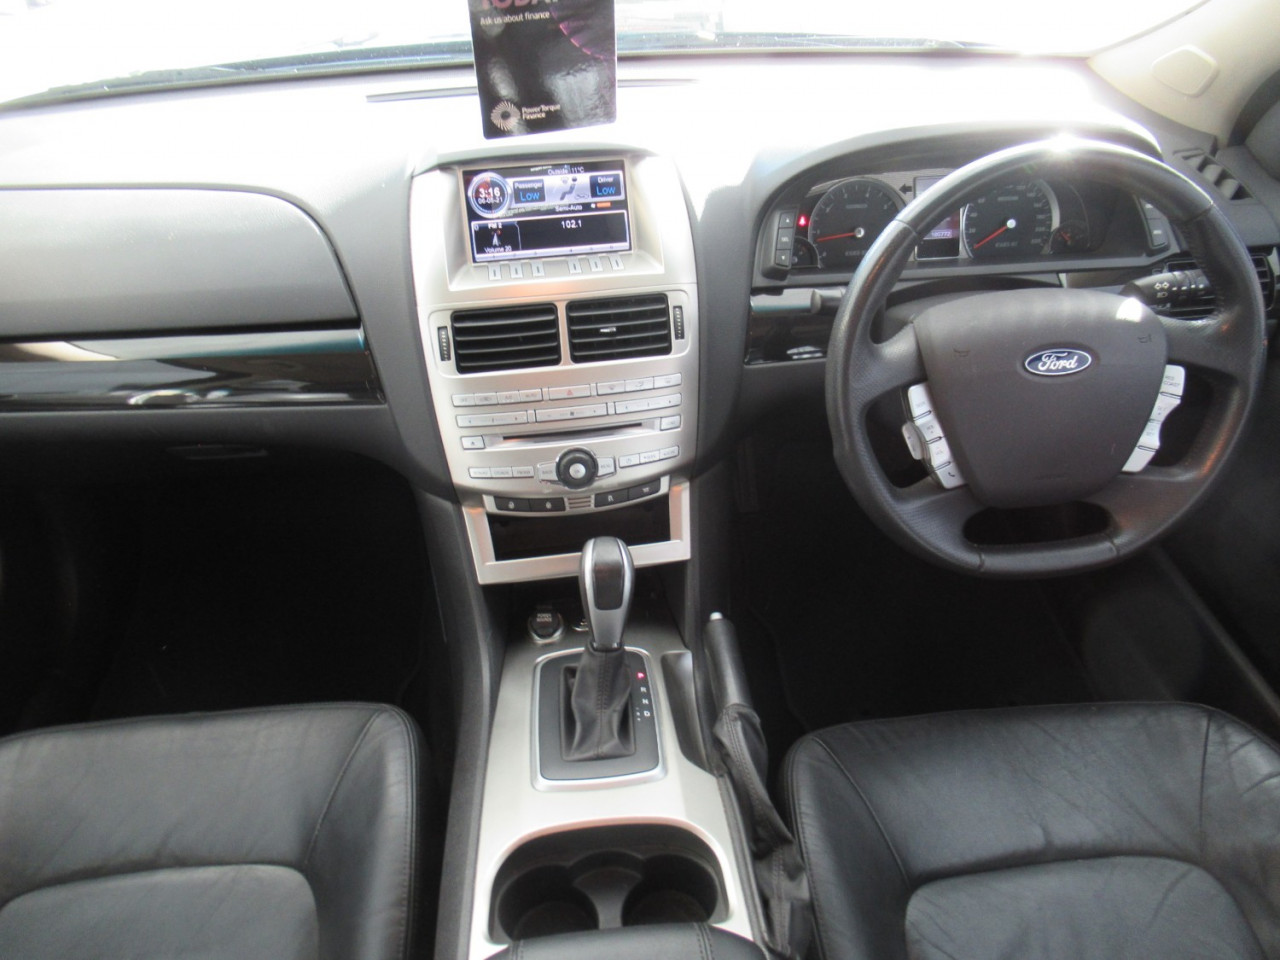 2008 Ford G6 Series FG G6E Sedan Image 20